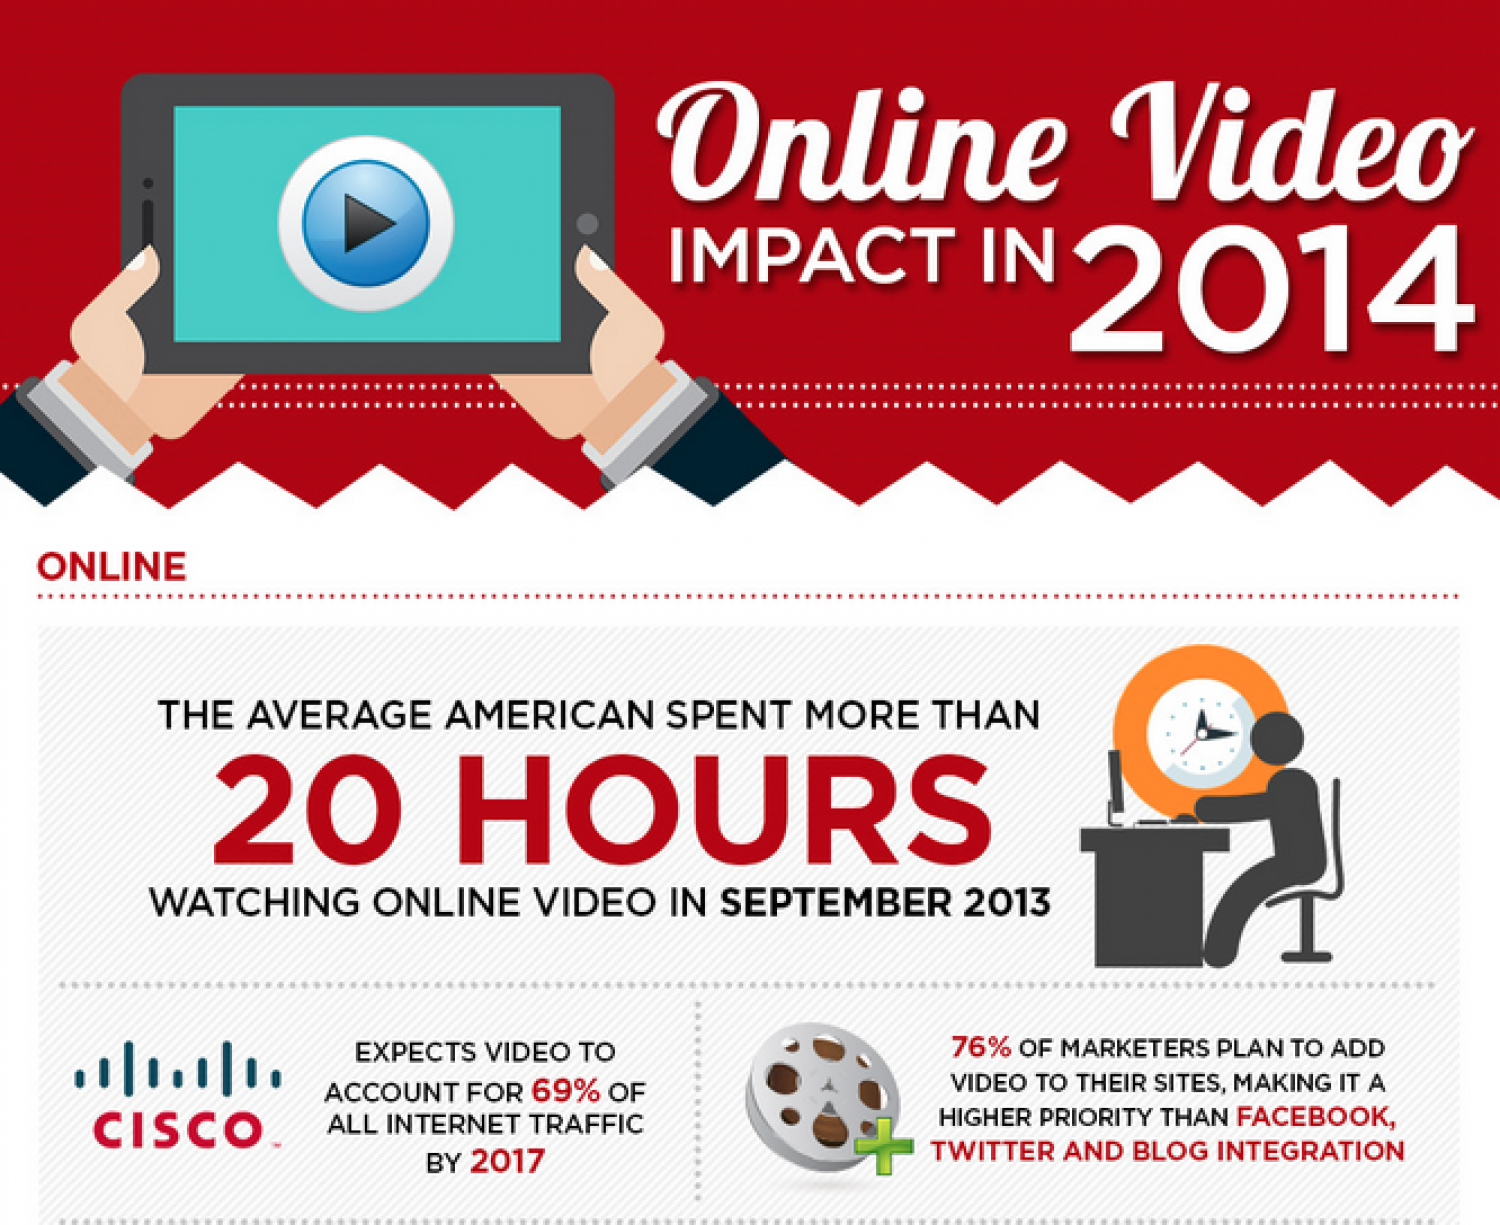 Online Video Impact in 2014 Infographic